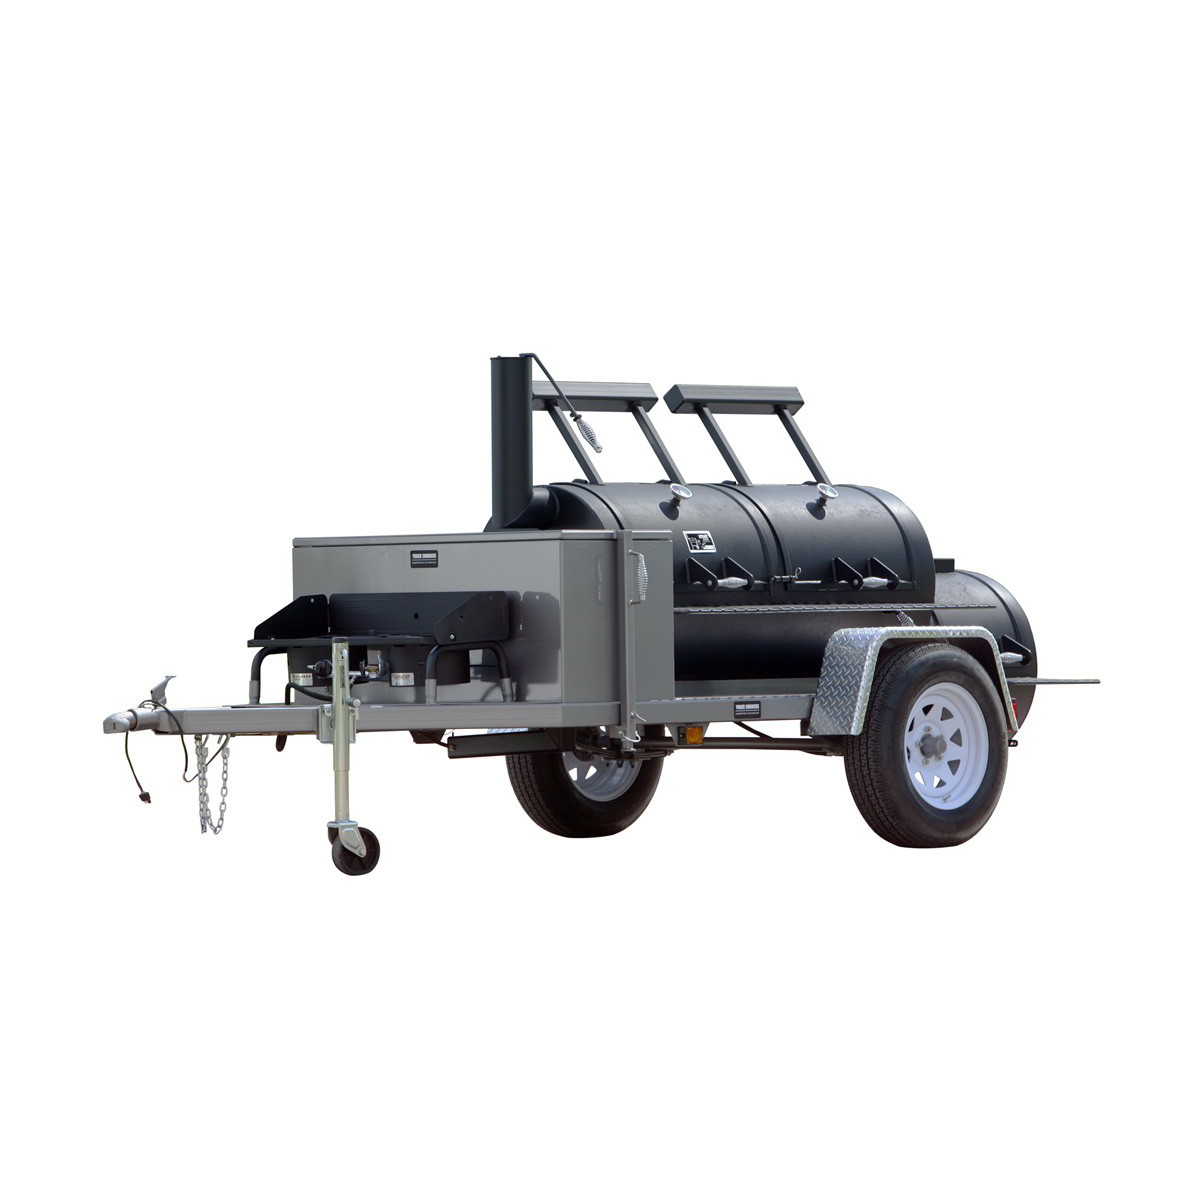 "Yoder Smokers 24"" Chisholm Trailer Mounted Smoker"